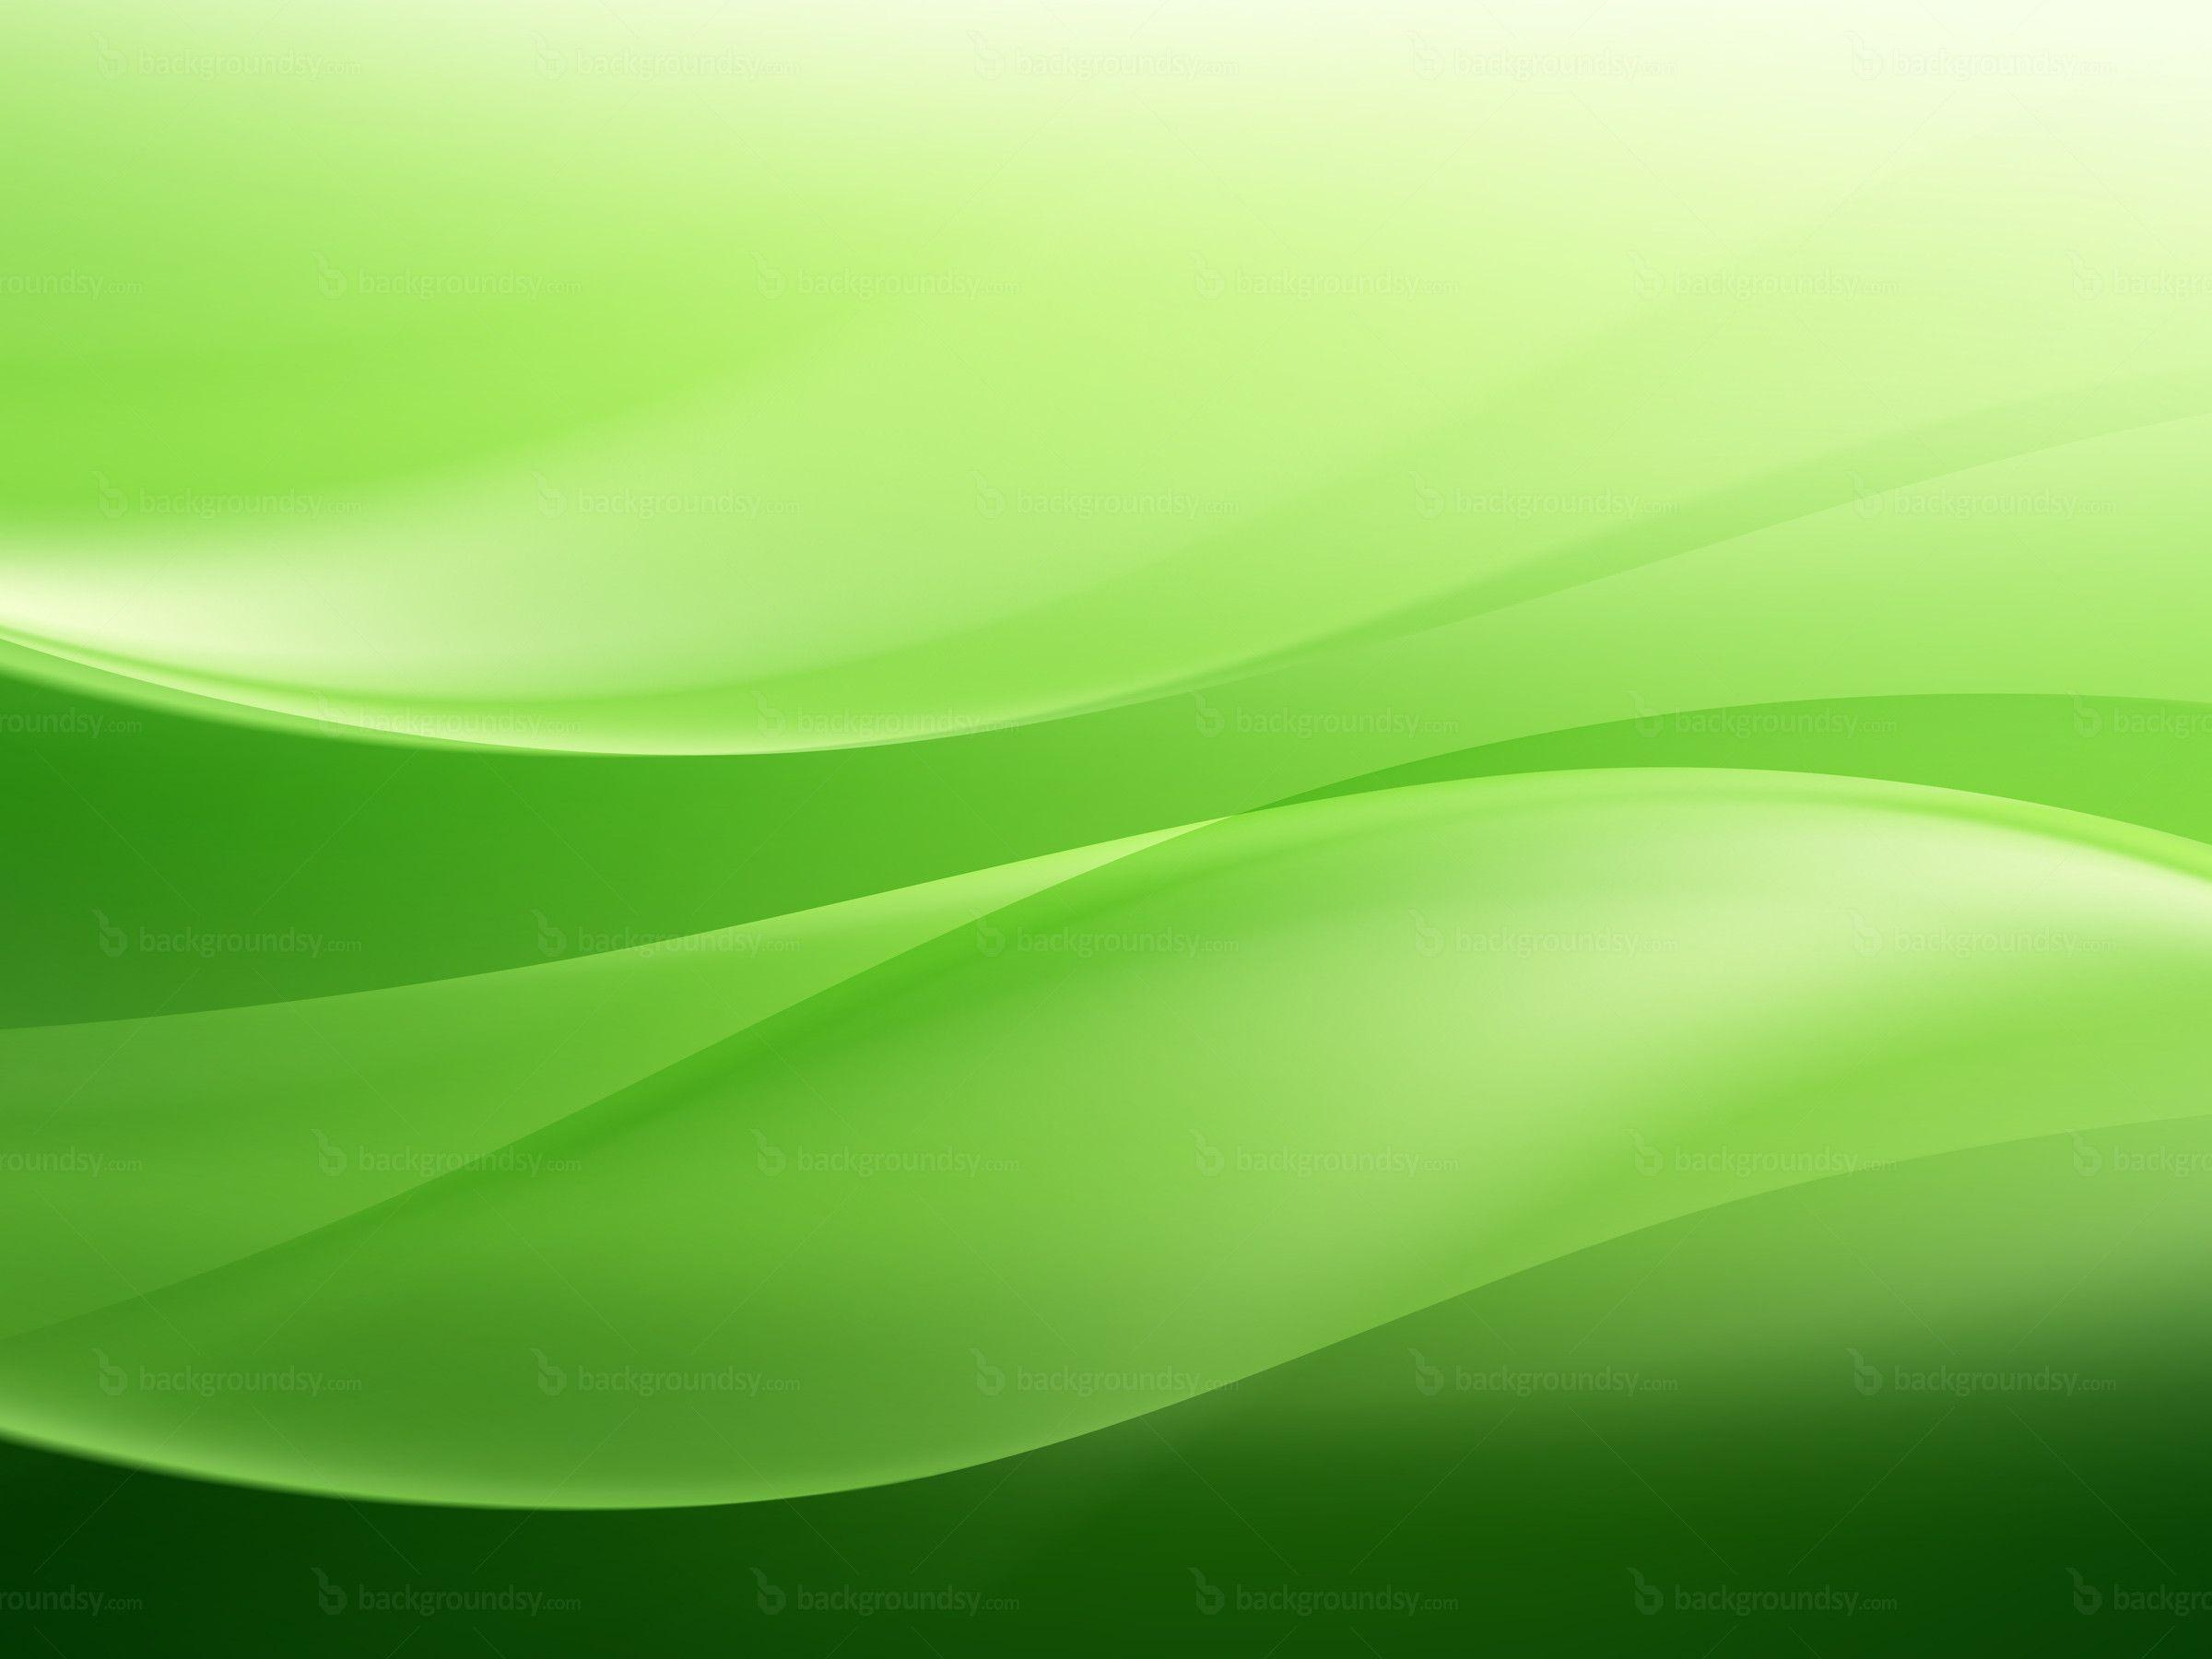 Green Background Design Wallpaper Backgrounds Gre...